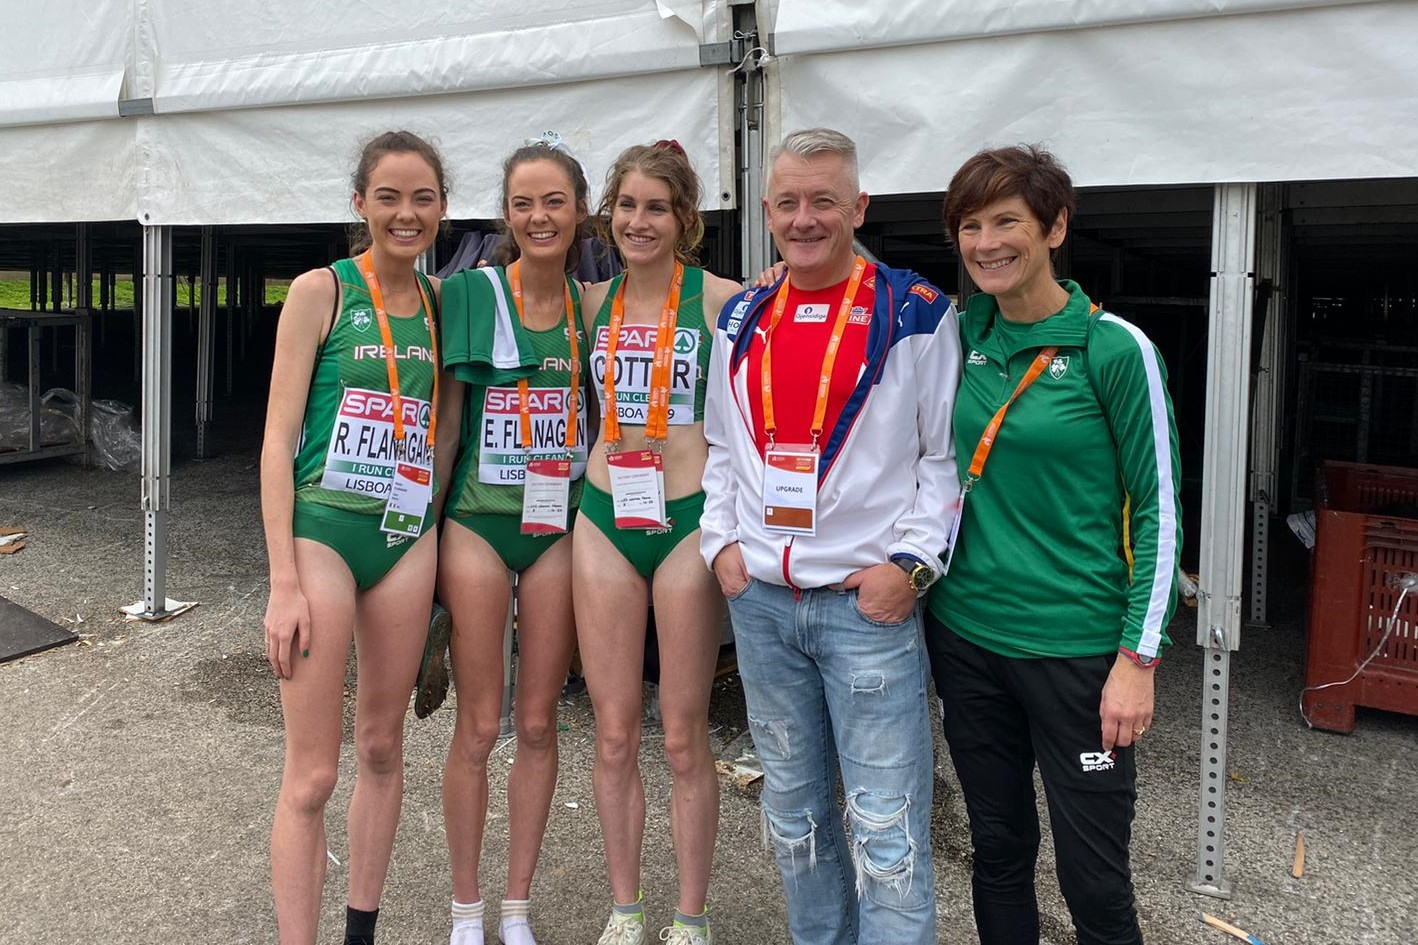 Niamh is pictured (far right) after the race in Lisbon along with the scoring members of her Irish team, Roisin Flanagan, Eilish Flanagan and Stephanie Cotter along with Gert Ingebritsen, coach and father of the famous Norwegian Ingebritsen brothers Jakob, Filip and Henrik.